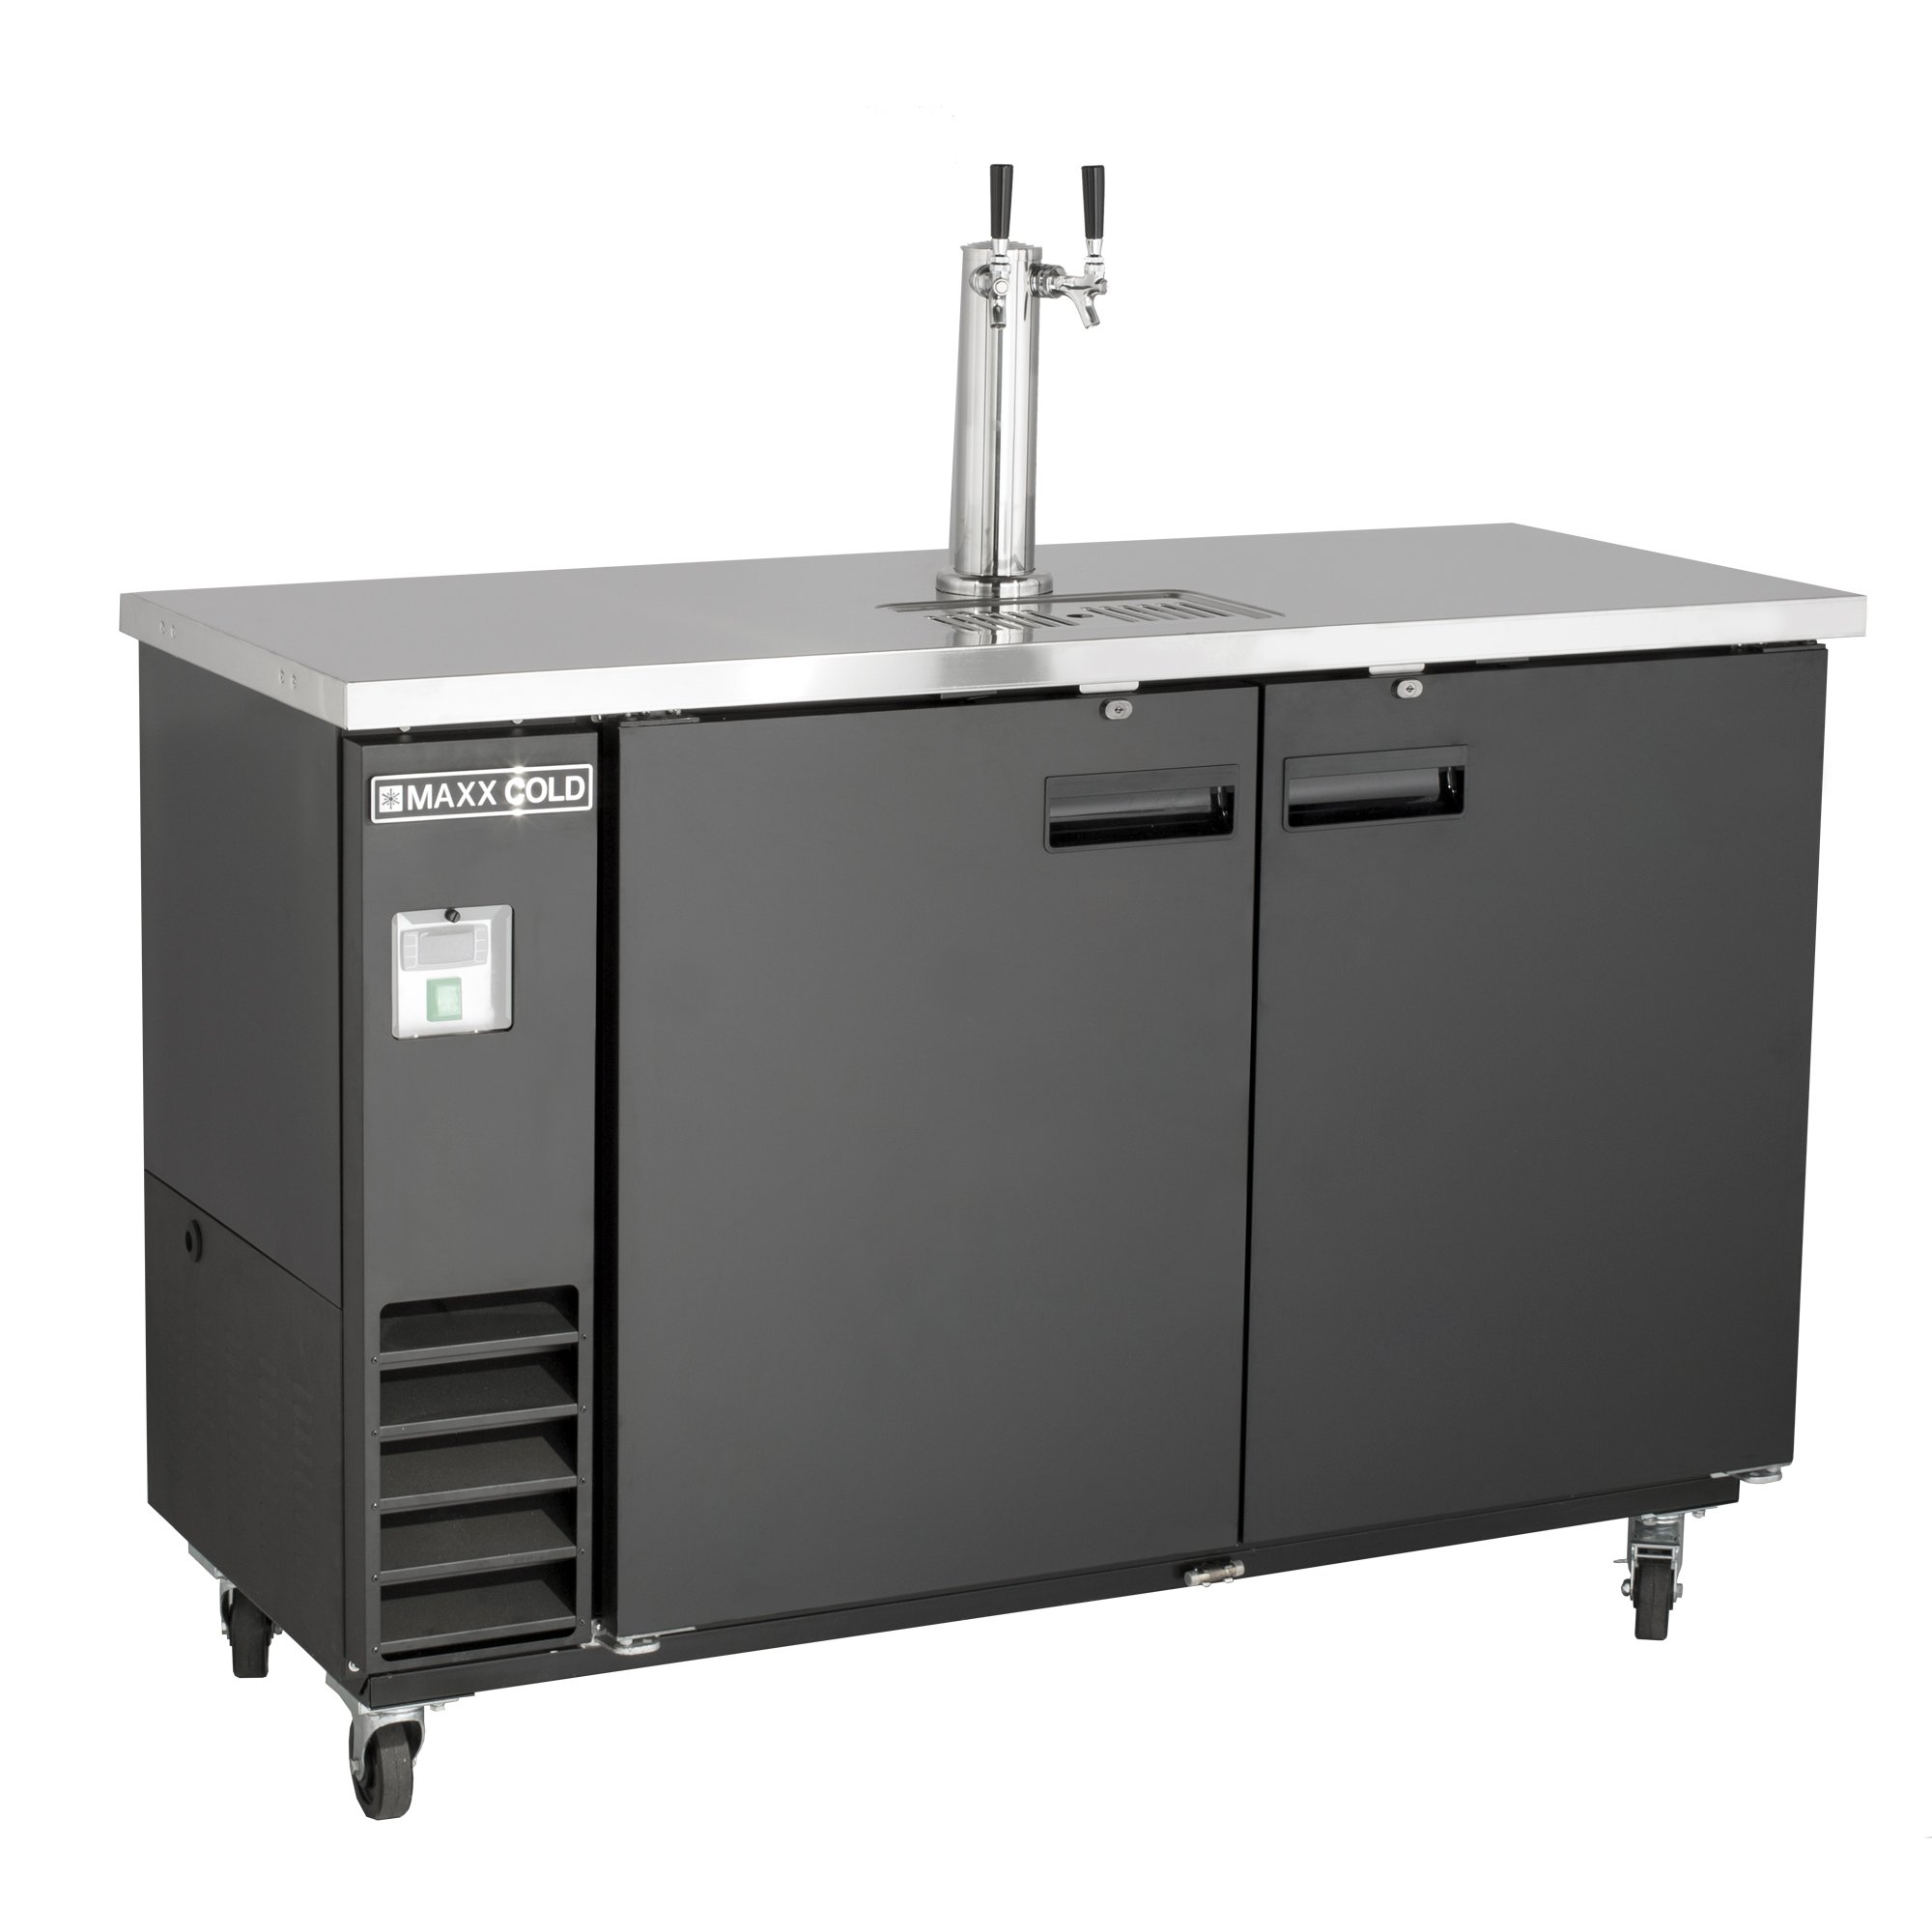 Maxx Cold MXBD60-1B Commercial NSF Bar Direct Draw Kegerator Beer Dispenser Cooler with 1 Single Tower Tap Holds 2 Half 1/2 Size Keg, 61.1 Inch Wide 14.2 Cubic Feet , Black